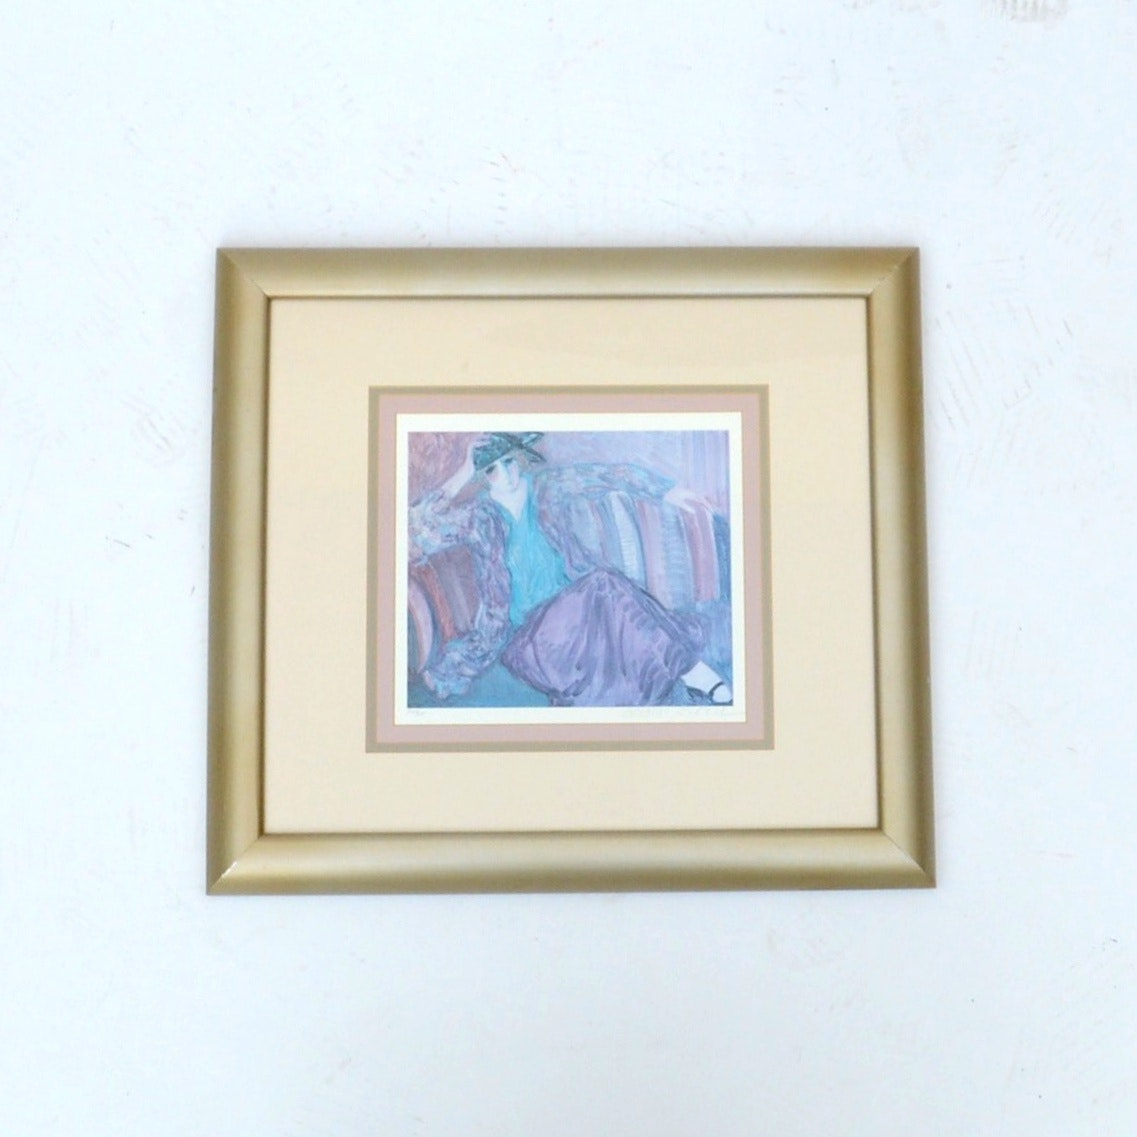 """Barbara A. Wood """"Pensive Woman"""" Signed and Numbered Offset Lithograph"""